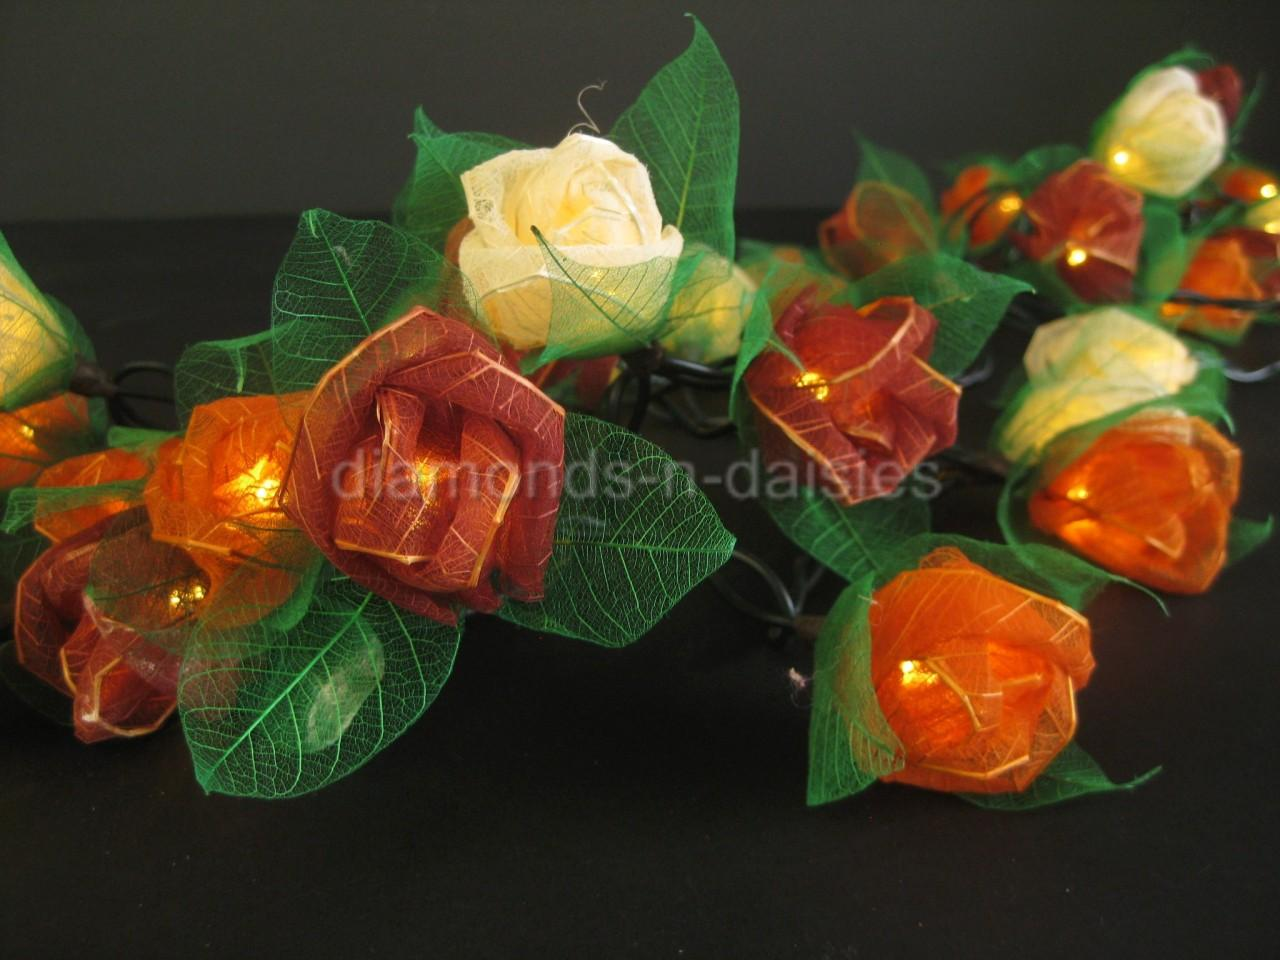 35-EARTHY-MIX-Mini-Rose-Flower-LED-String-Fairy-Lights-Lanterns-Home-Party